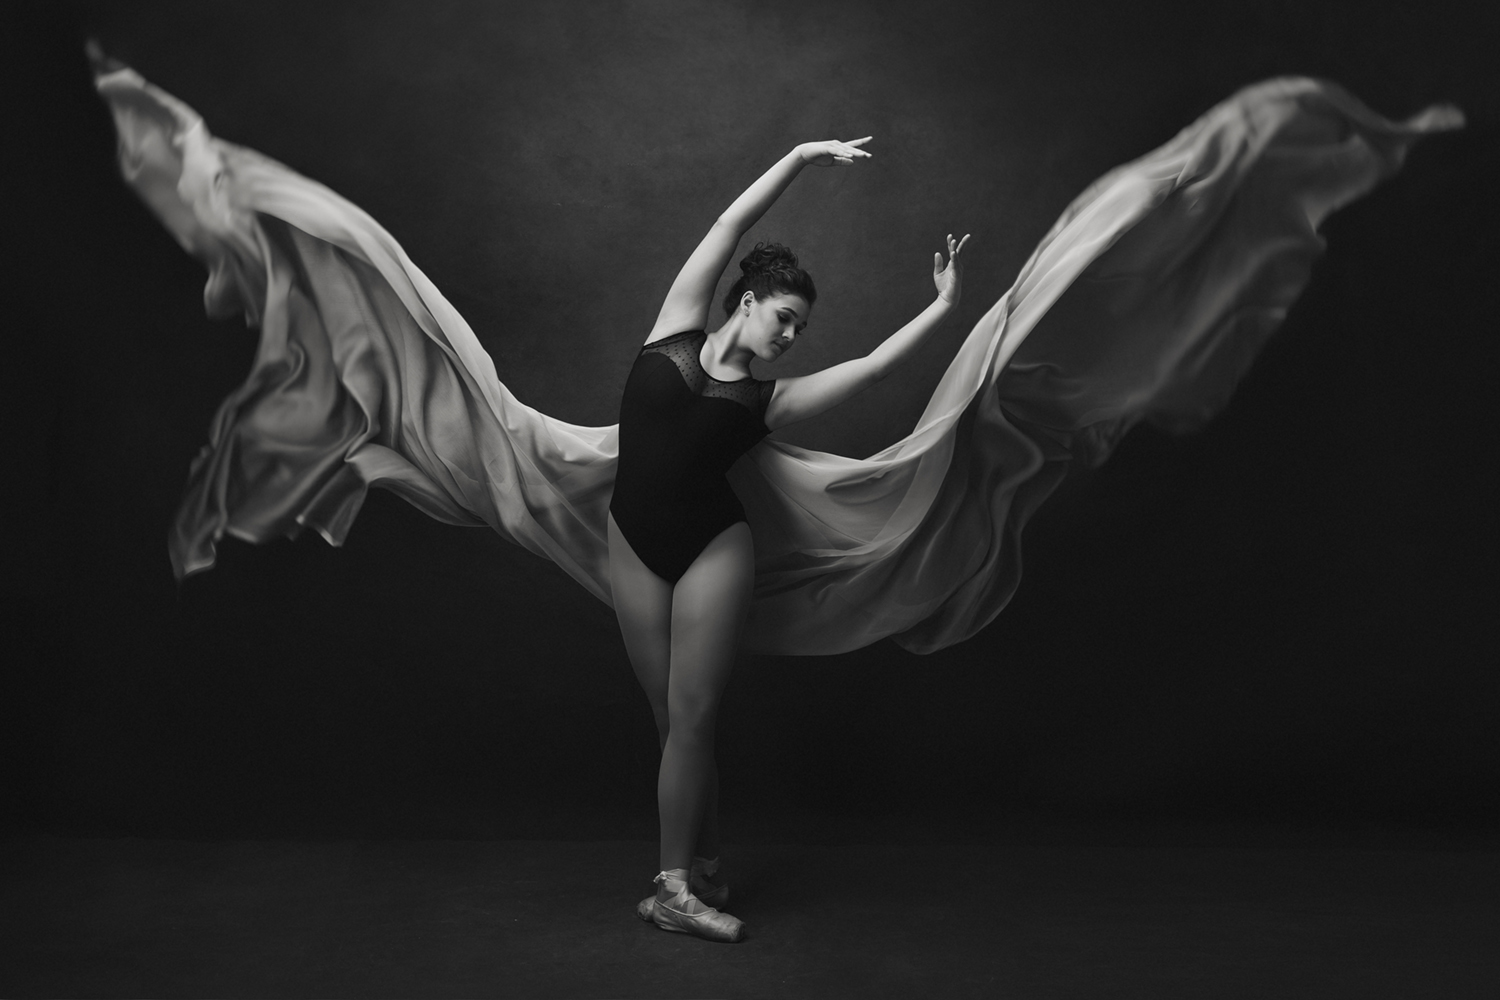 Stunning Black and white fine art photography of a ballet dancer by Mayumi Acosta.jpg